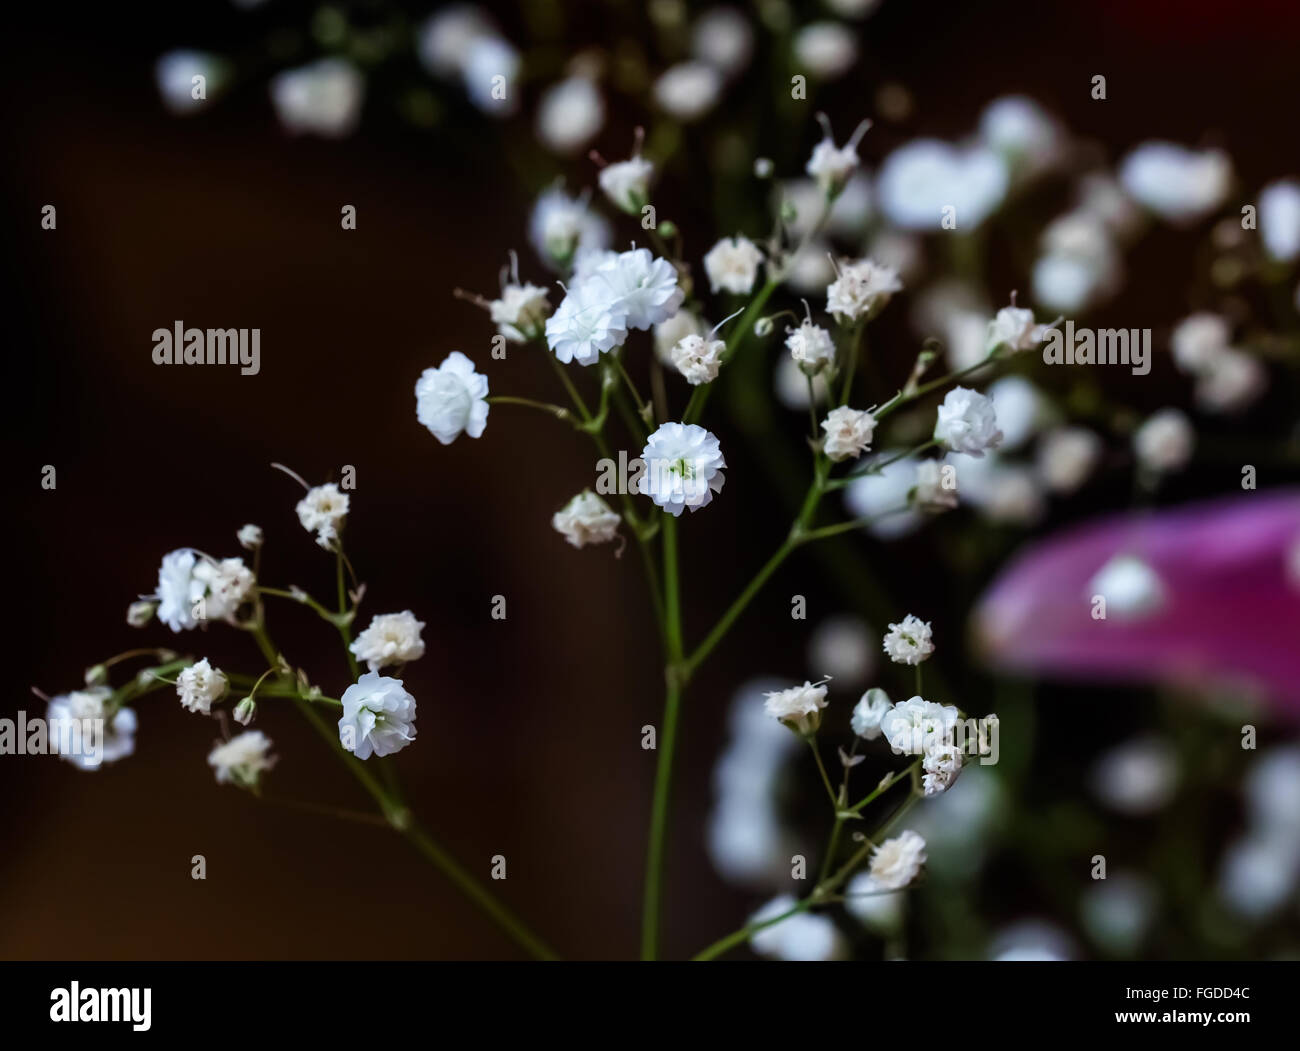 Small white nice flowers like dance in twilight - Stock Image